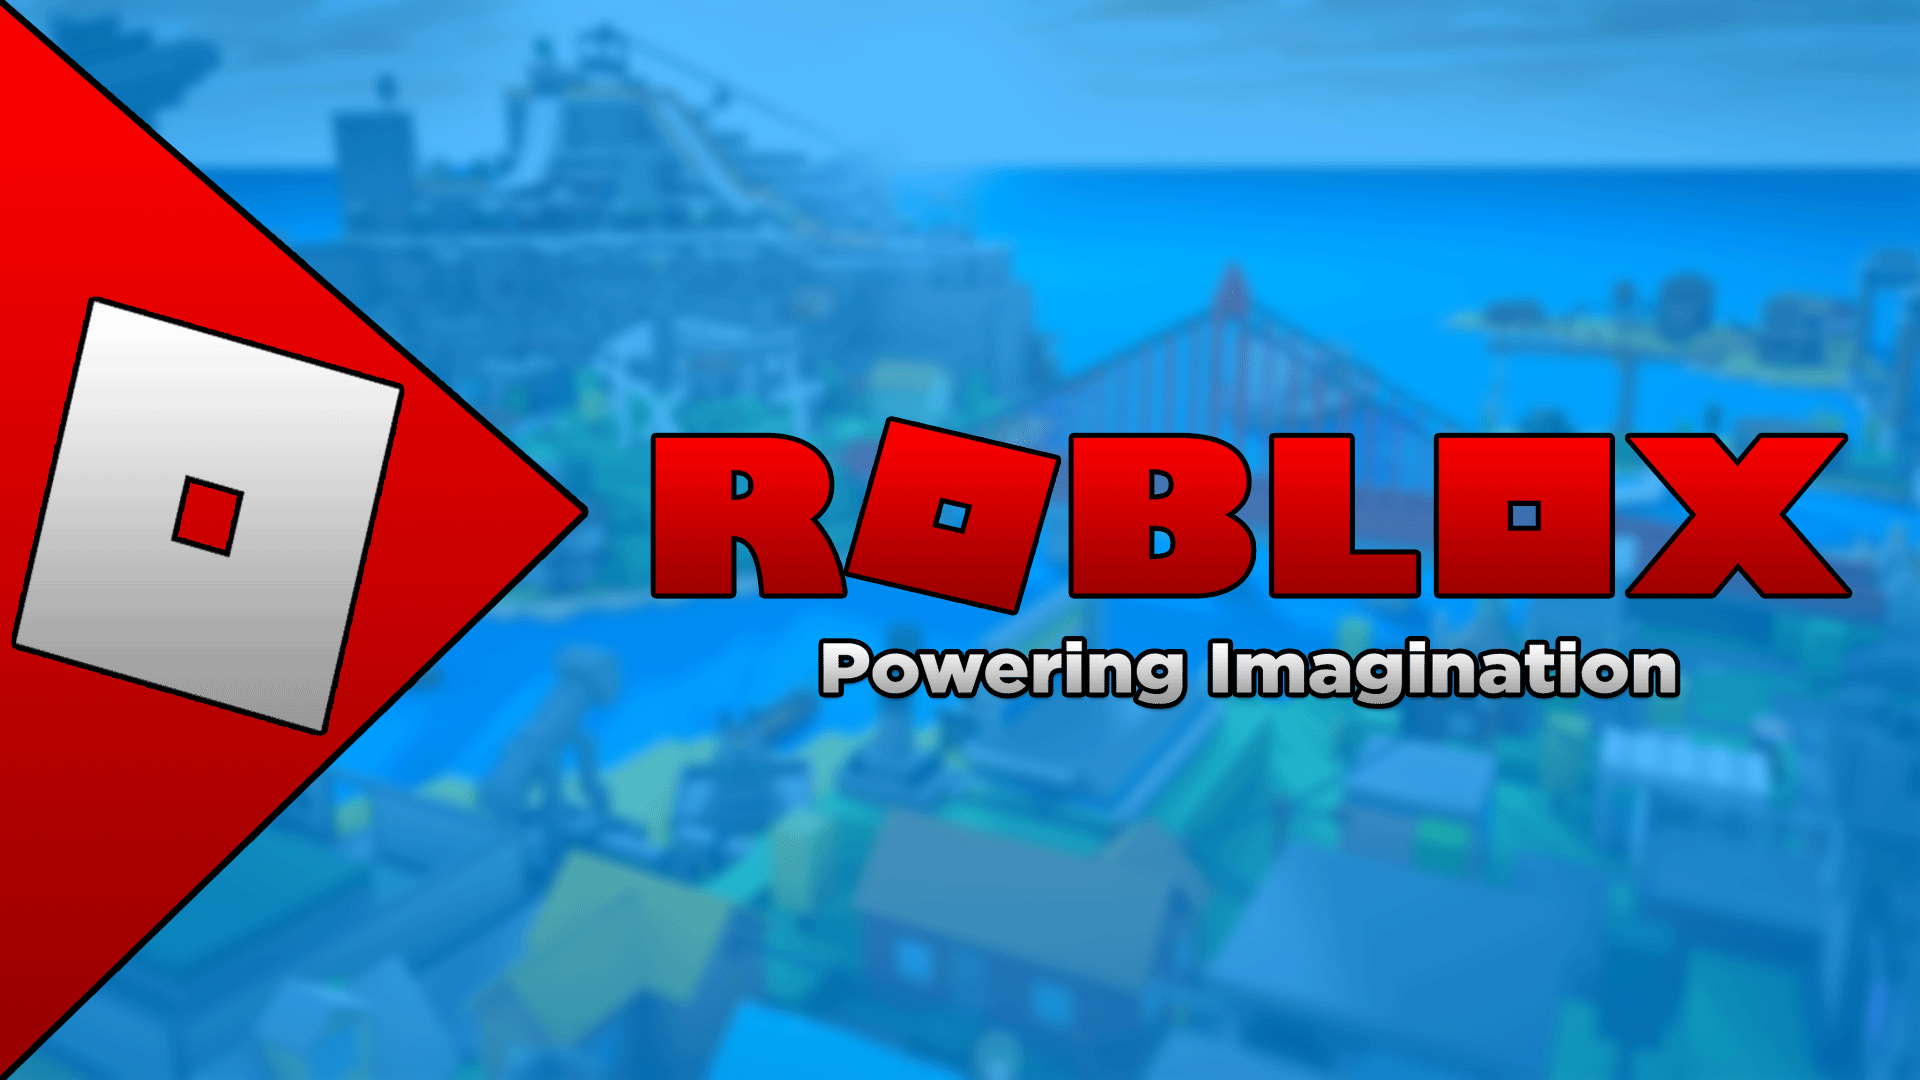 Roblox Background By Realfrosticle On Deviantart Check my other games out: roblox background by realfrosticle on